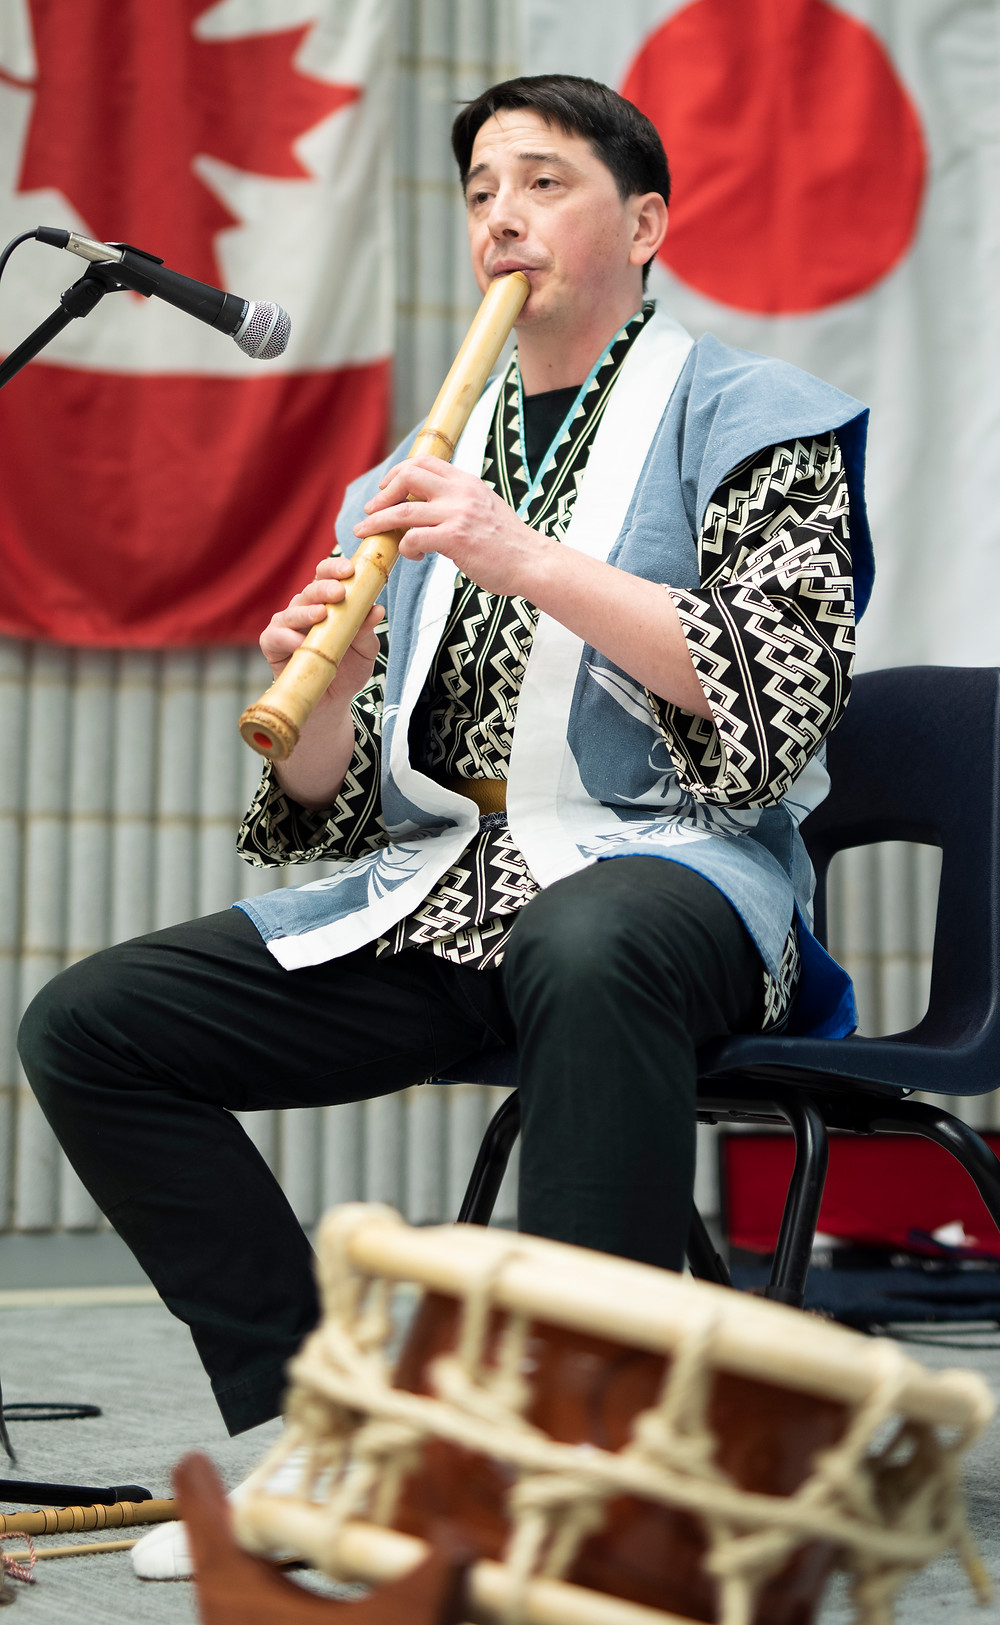 Kokichi Kusano performs Soran-bushi on Shakuhachi in Mitsuki